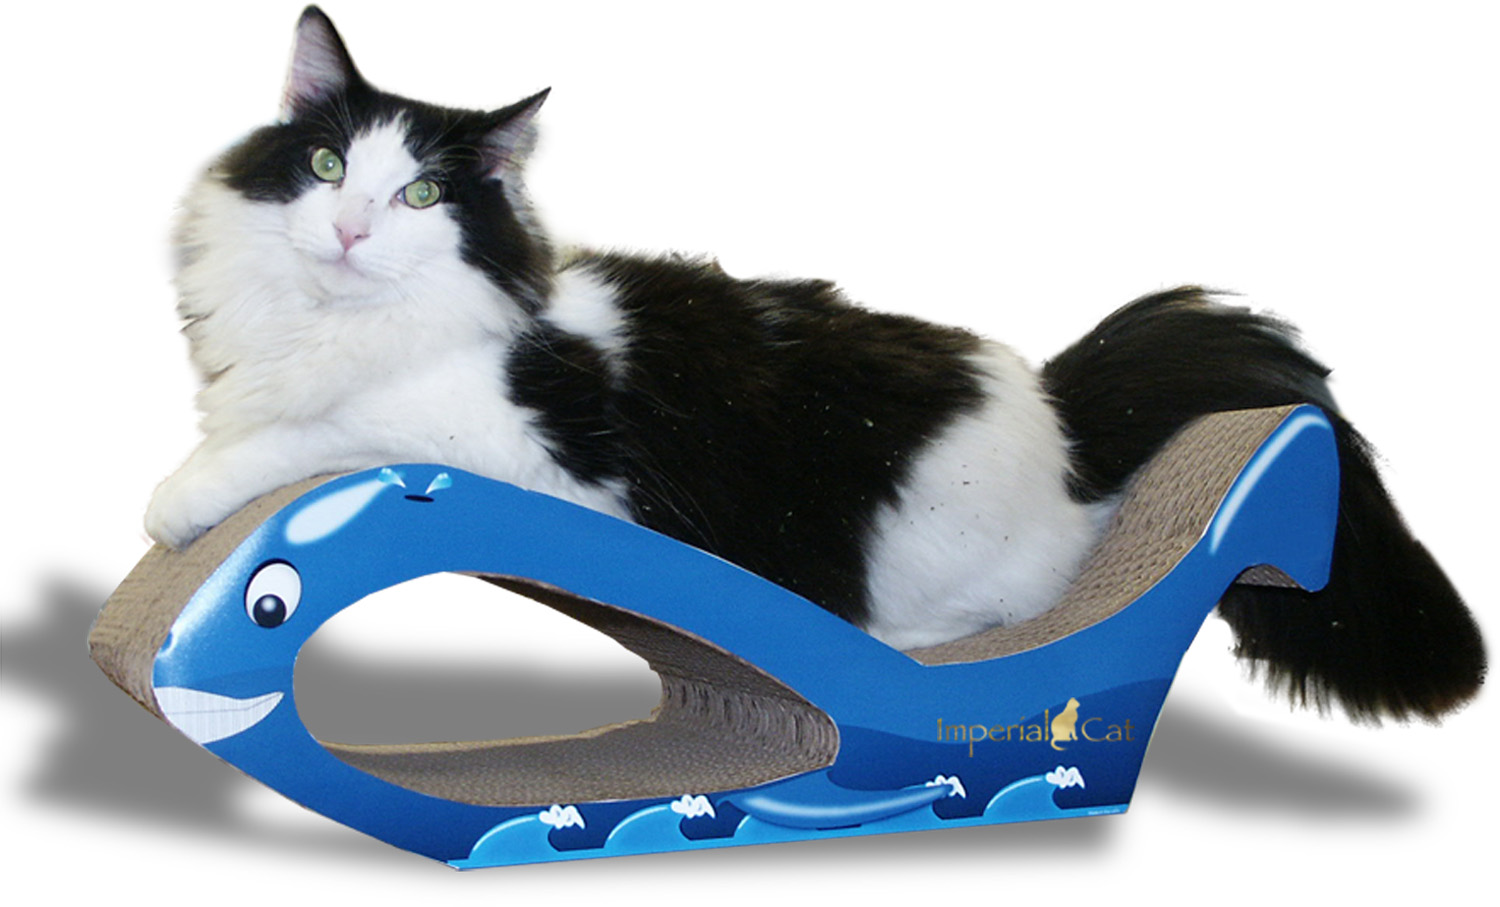 Imperial Cat Ocean Scratchers